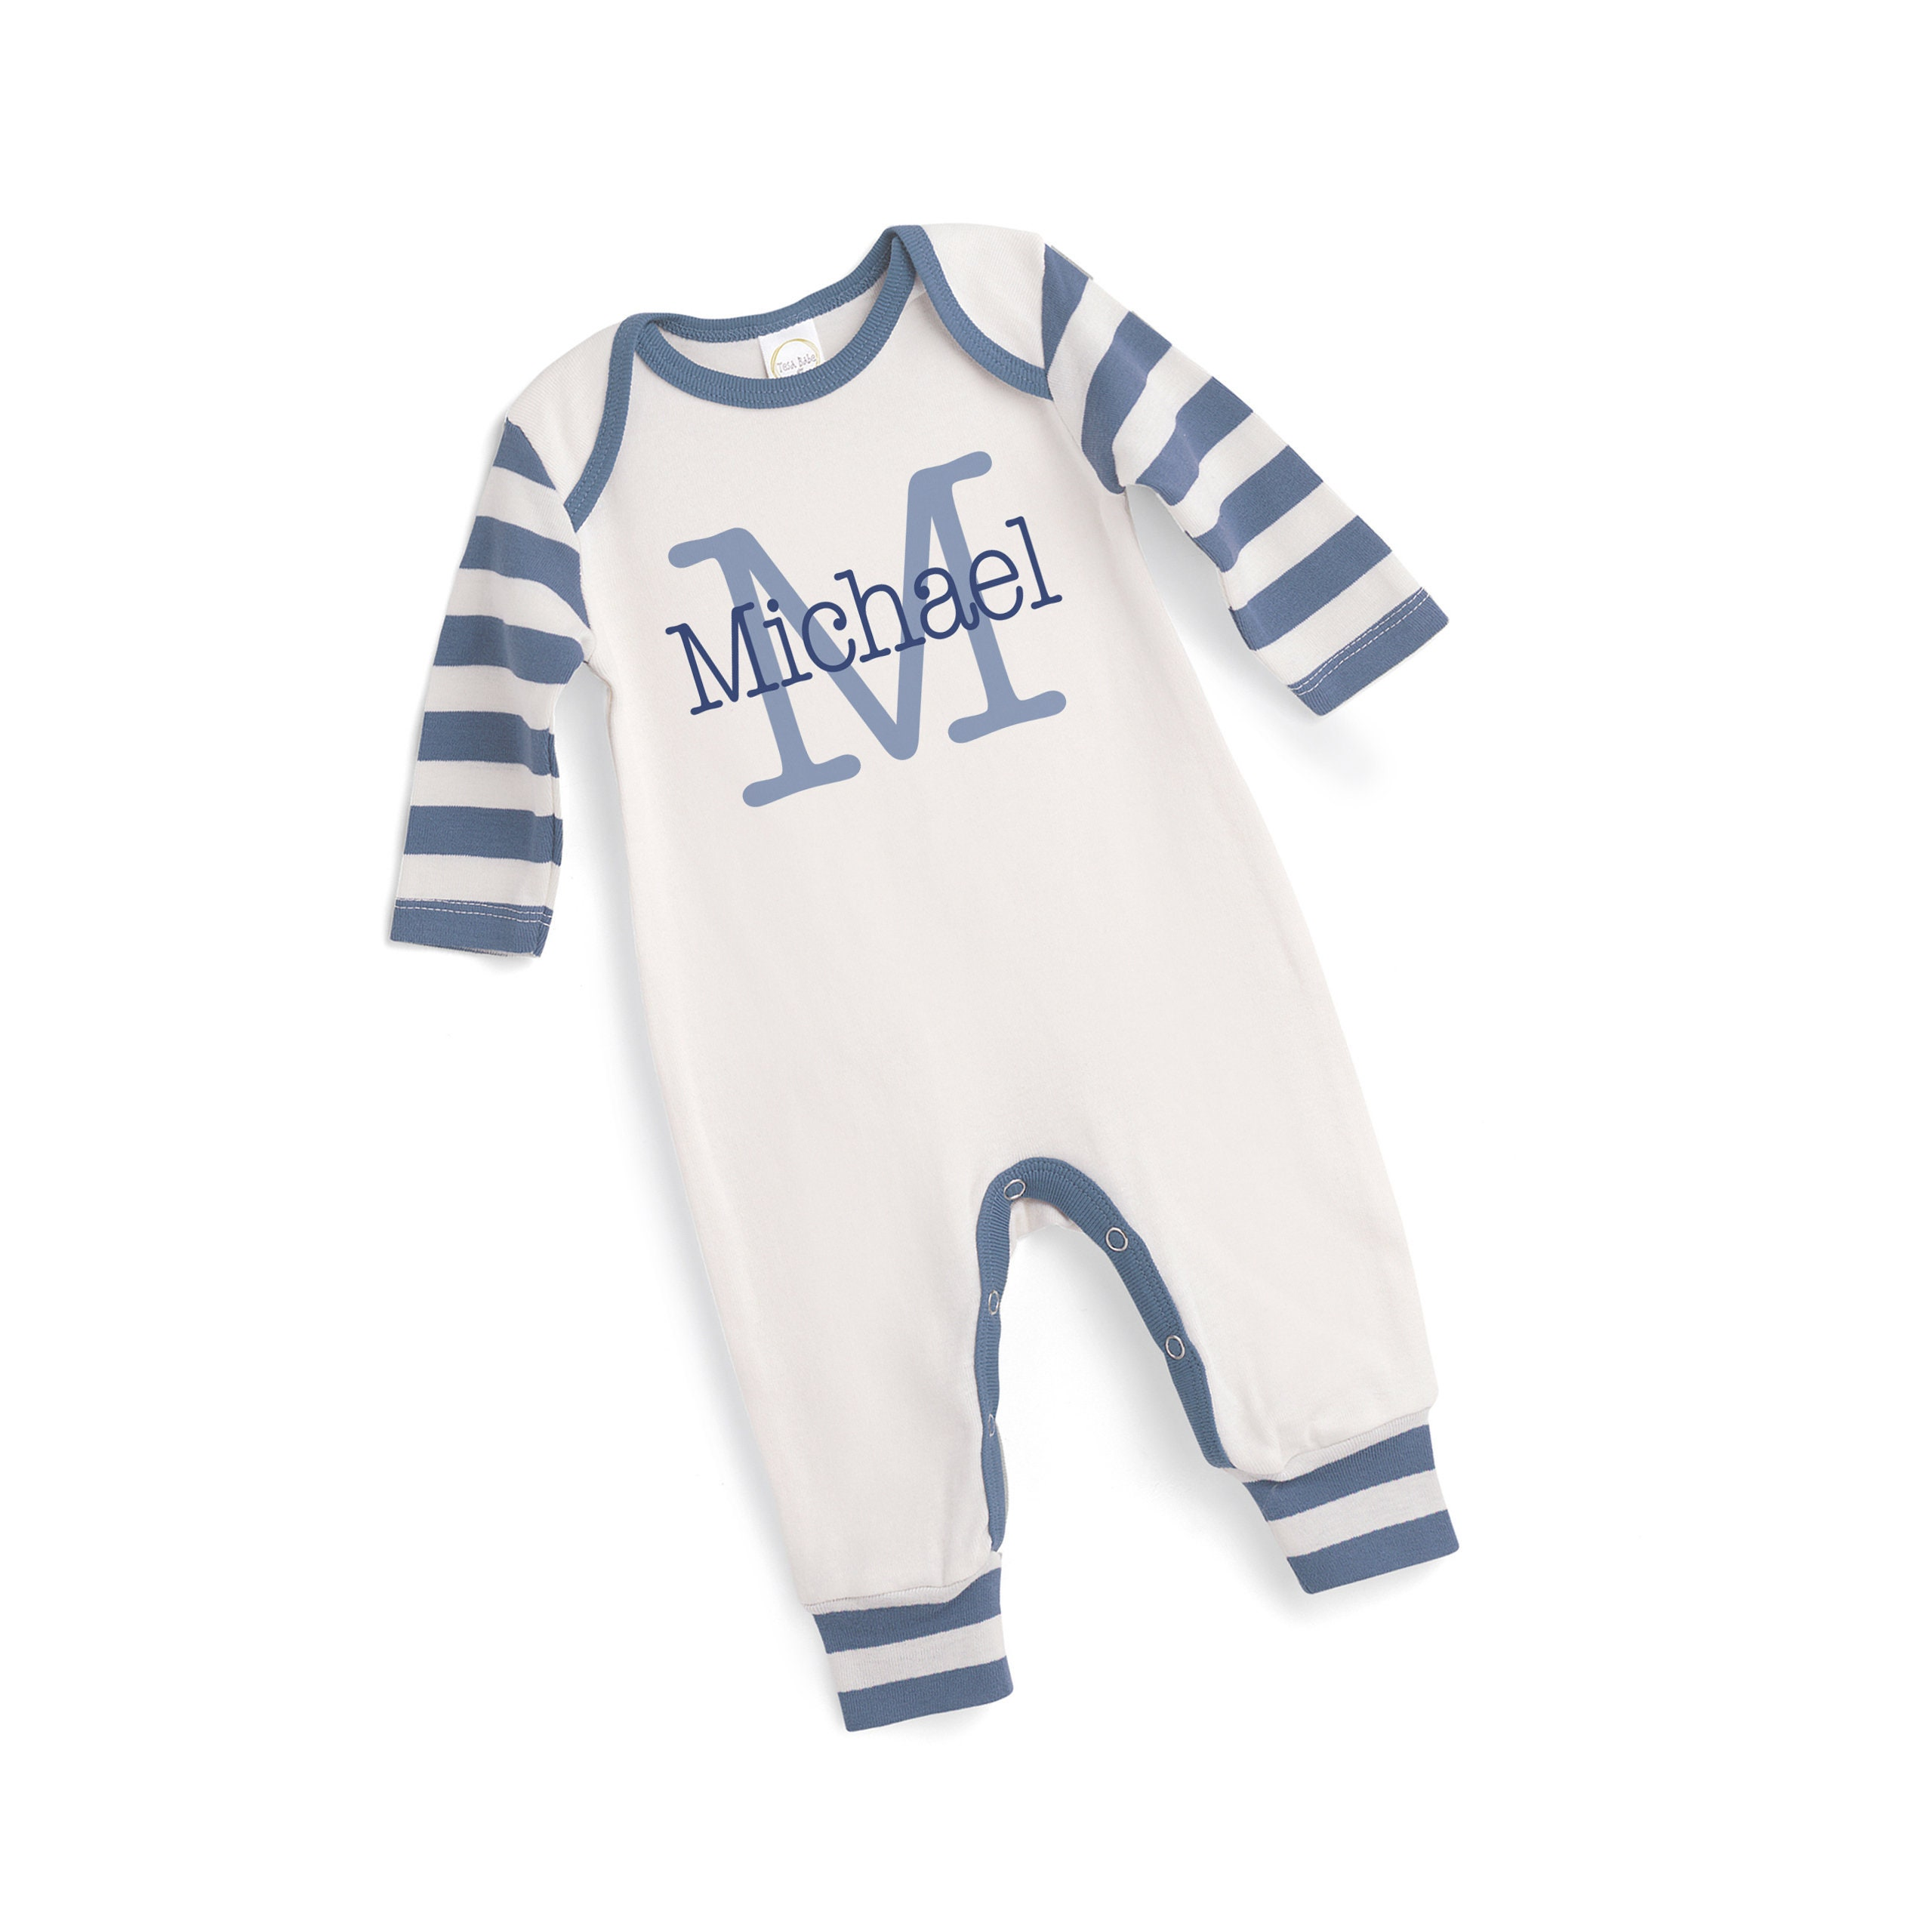 79d0f8251584 Personalized Newborn Boy Coming Home Outfit